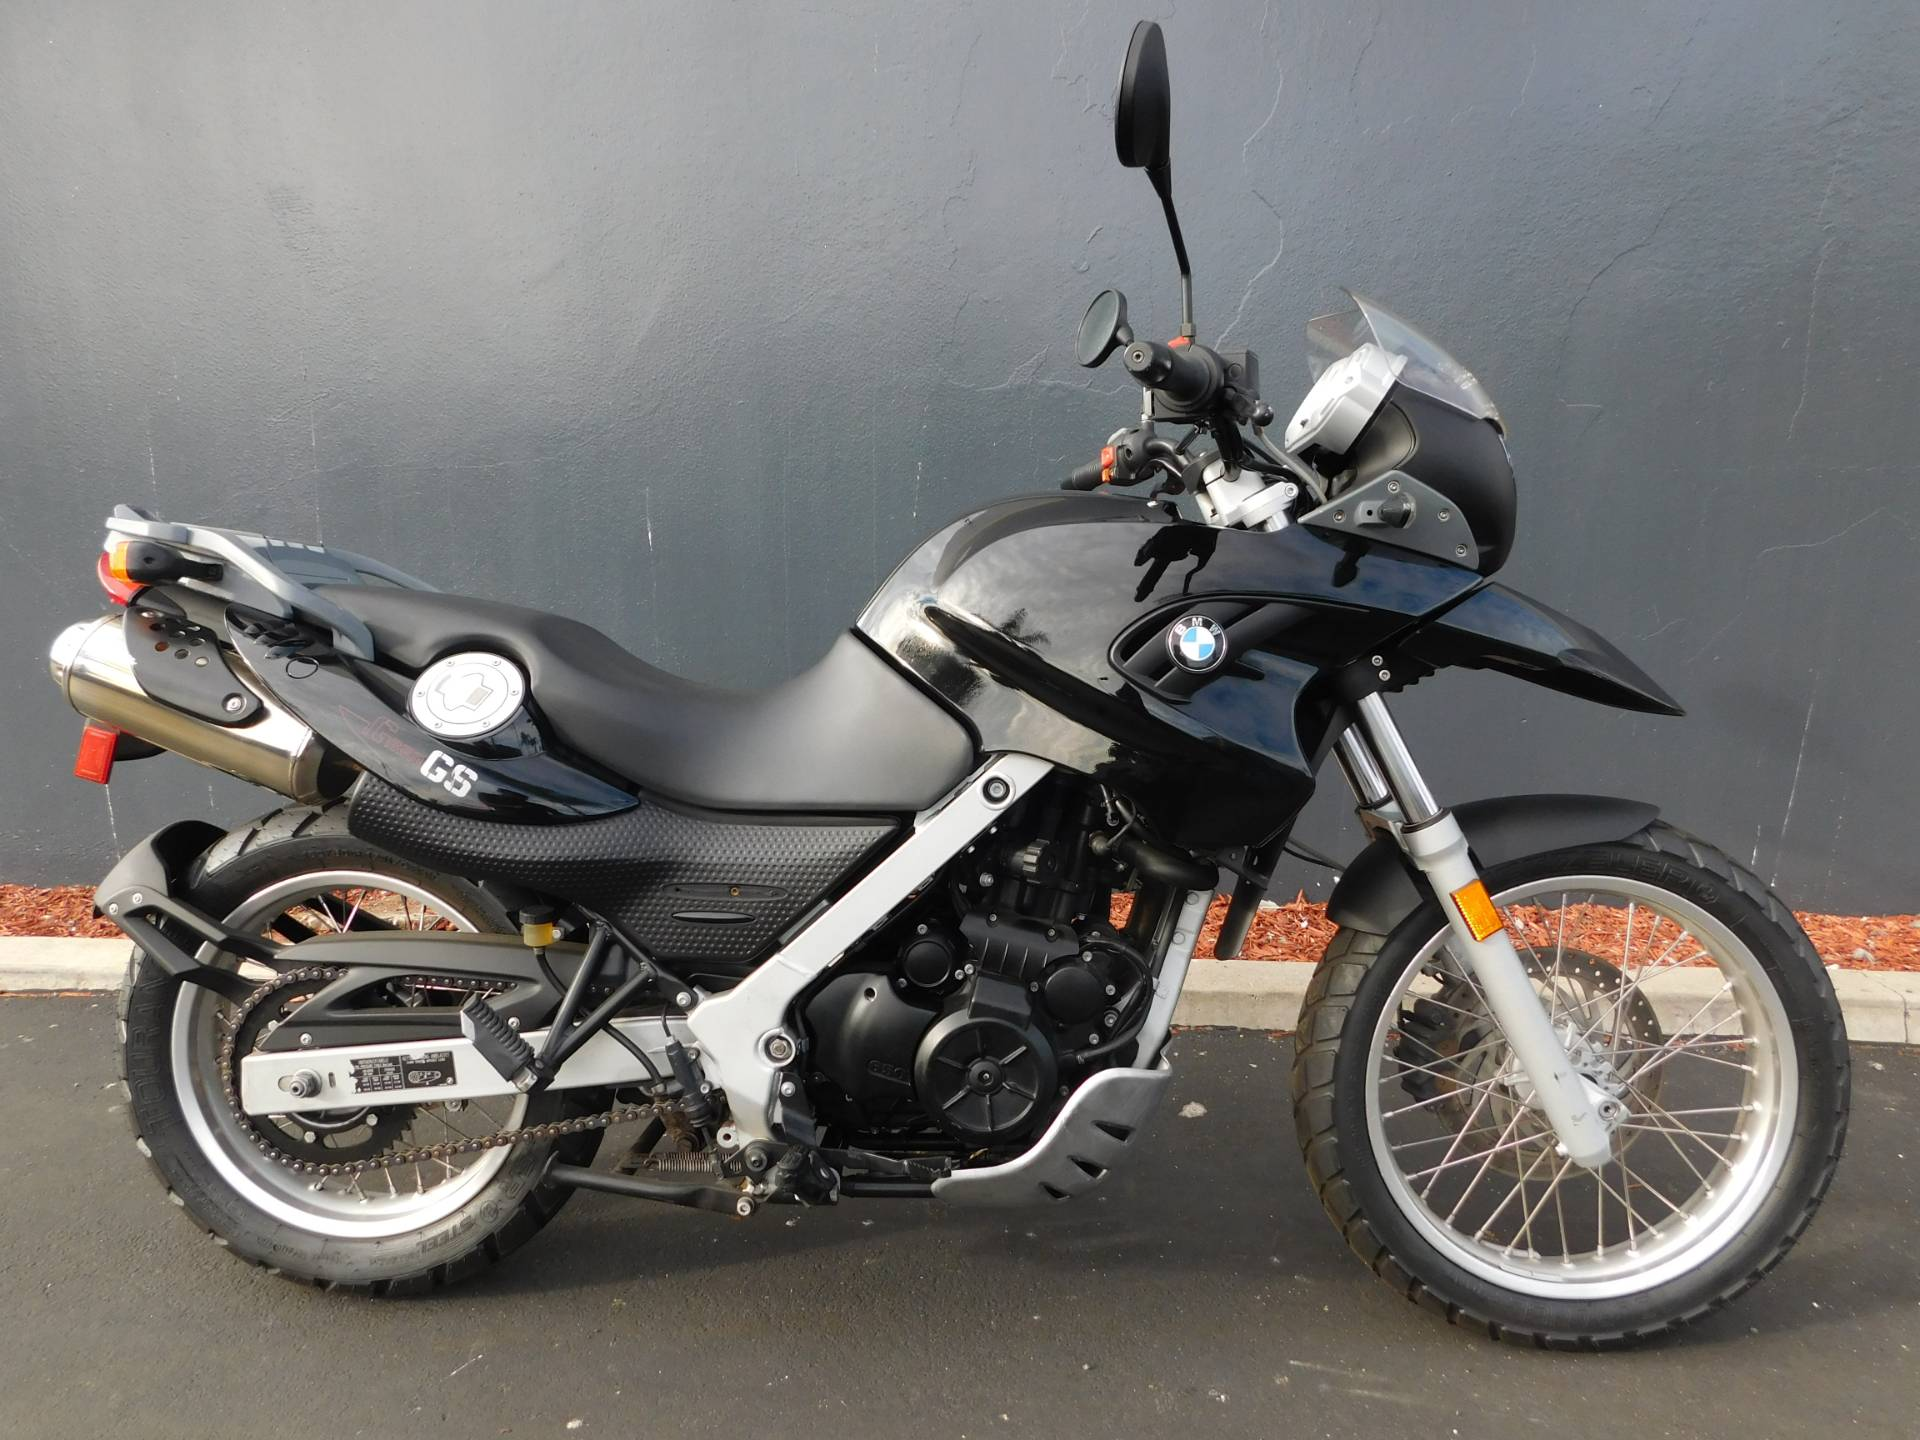 Used 2010 BMW G 650 GS Motorcycles in Chula Vista CA